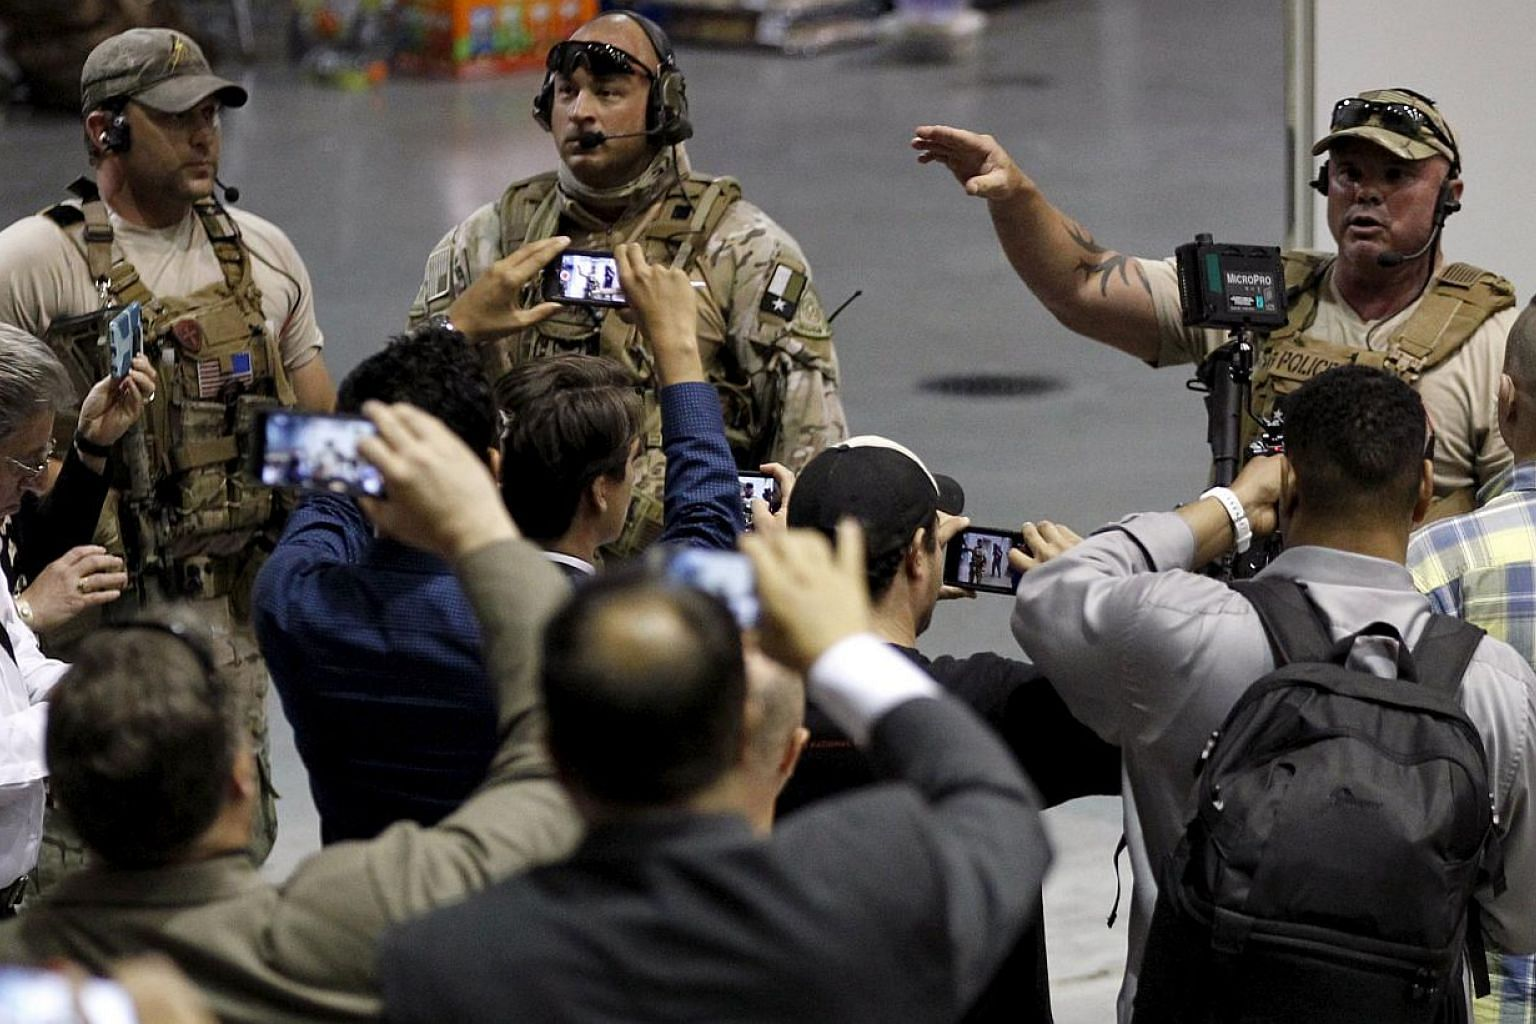 Police officers address attendees at the Muhammad Art Exhibit and Contest. Two gunmen opened fire at an anti-Islam art show featuring depictions of the Prophet Mohammad in Garland, Texas, near Dallas on Sunday. -- PHOTO: REUTERS